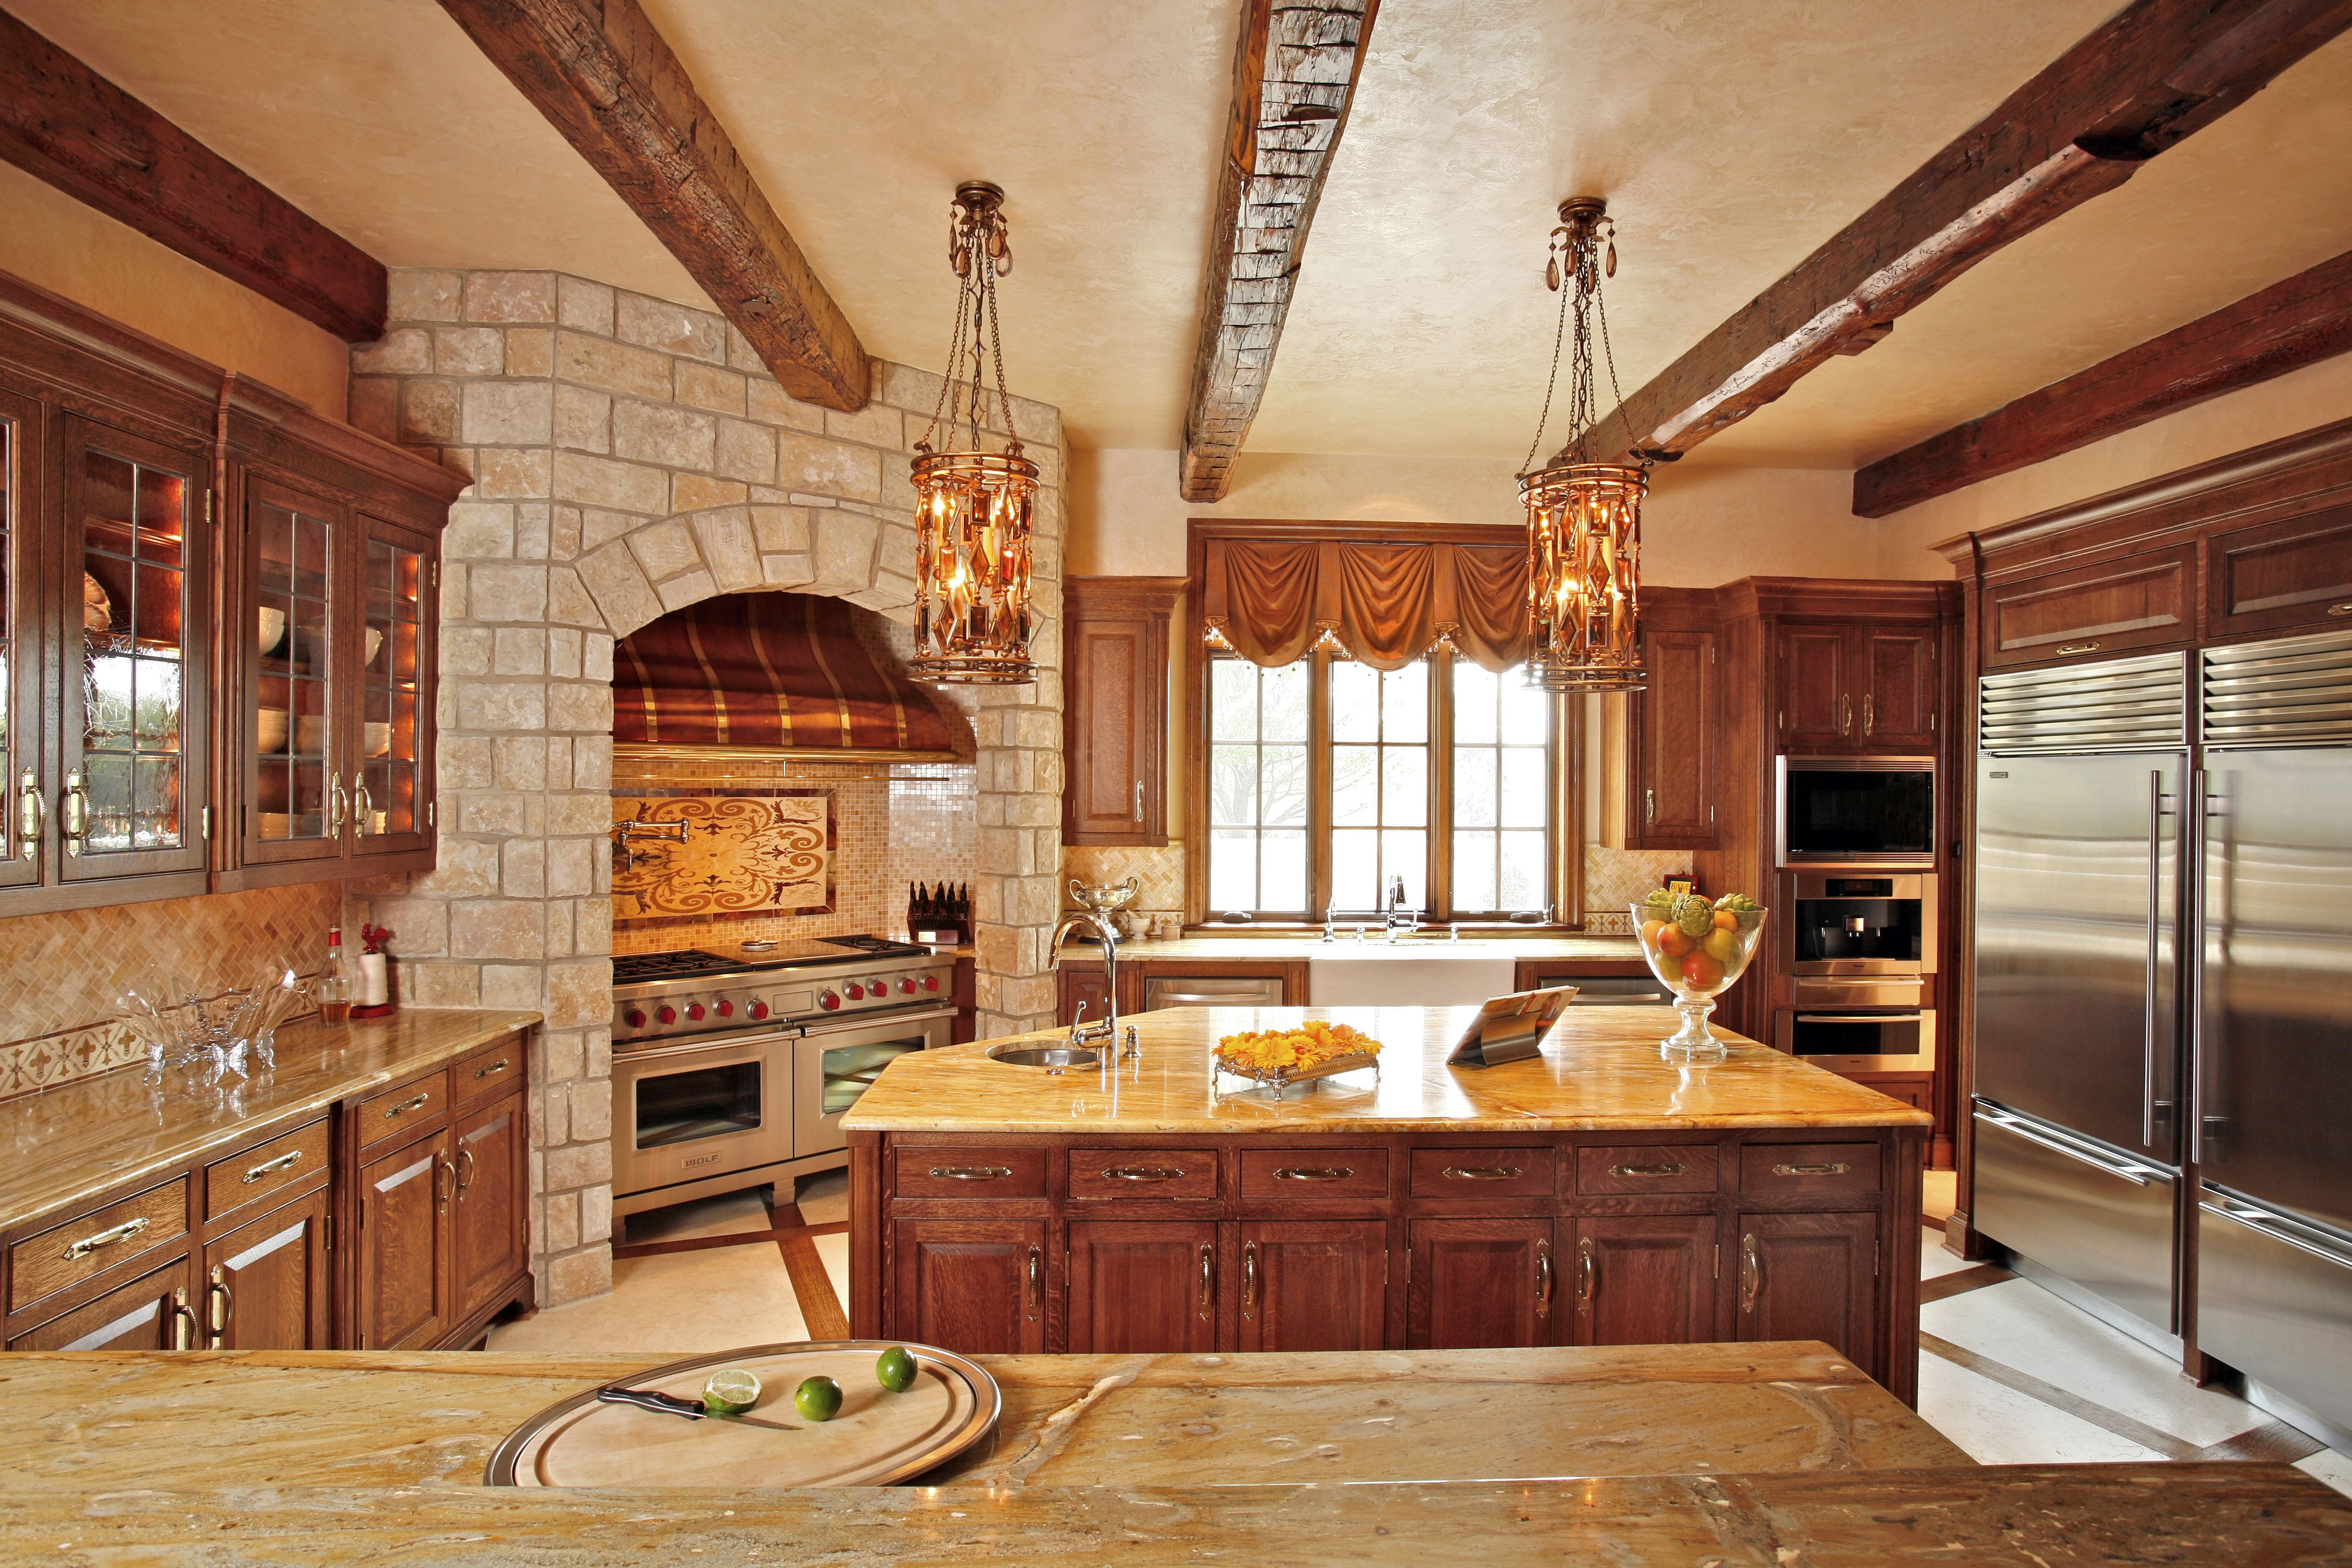 Dream Country Kitchen Love The Brick Around The Stove And The Double Refrigeratorwould